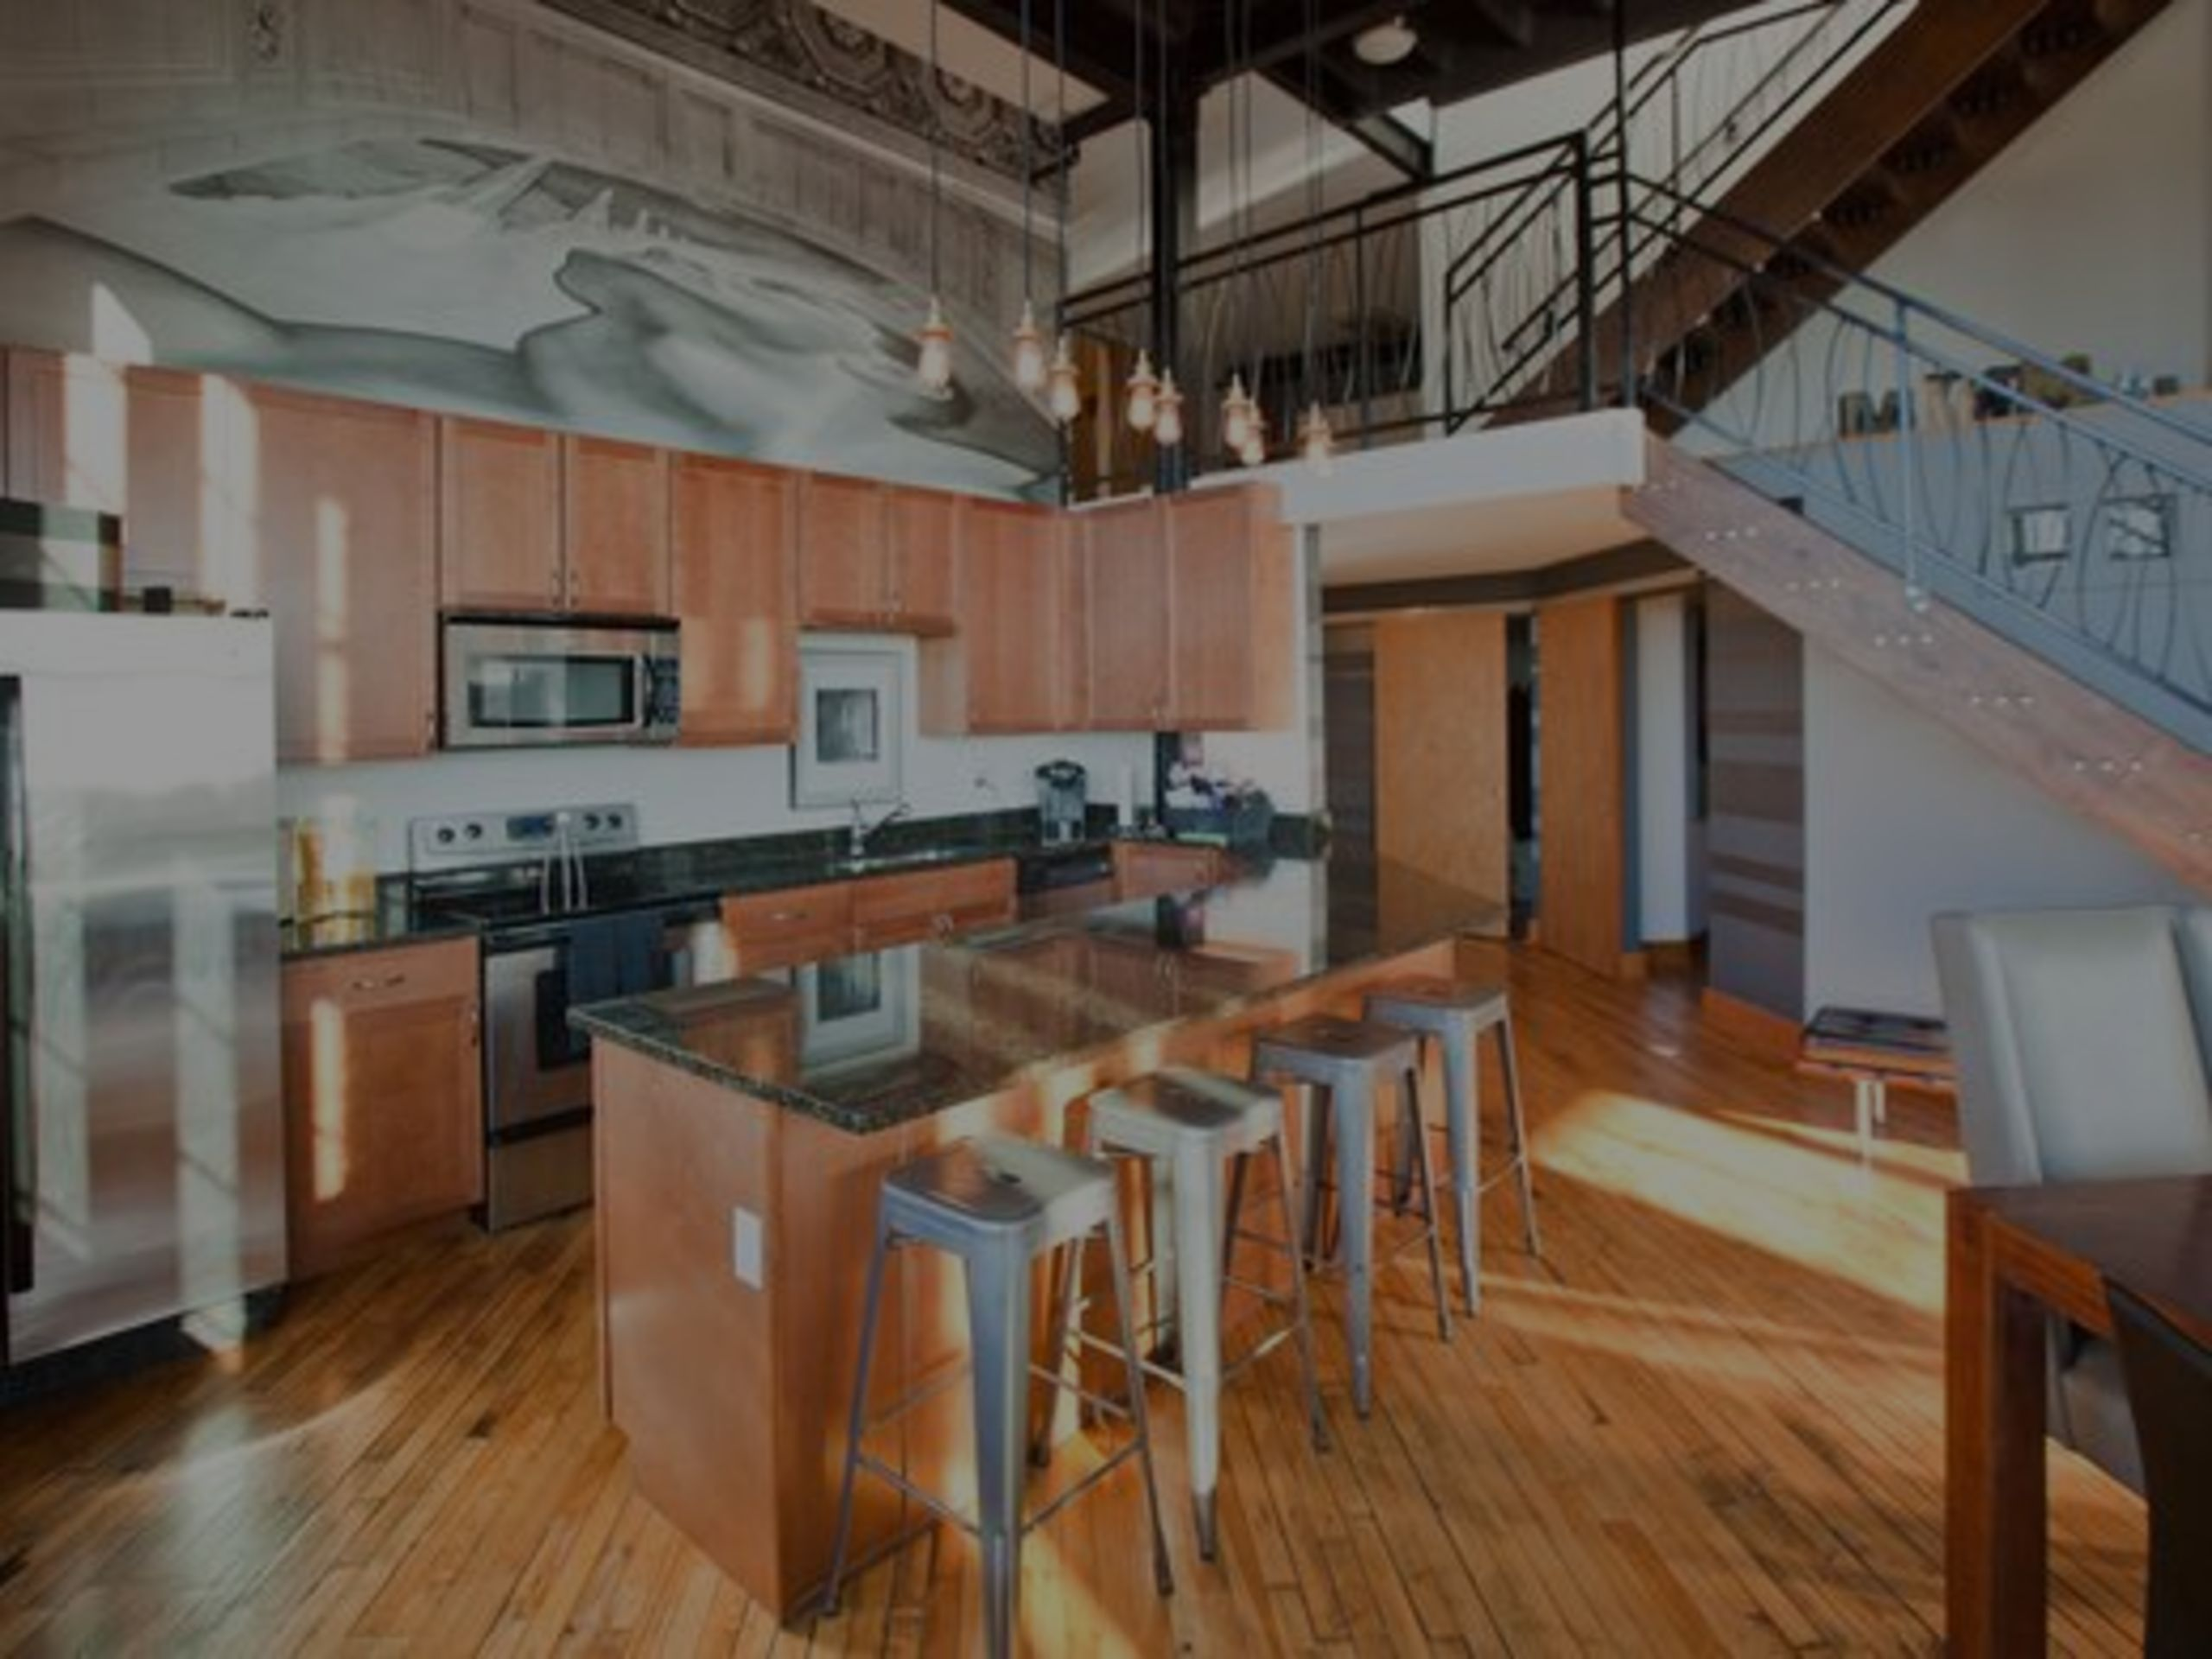 See inside the Corktown loft in Detroit that fetched a record $531,000 (Detroit Free Press)